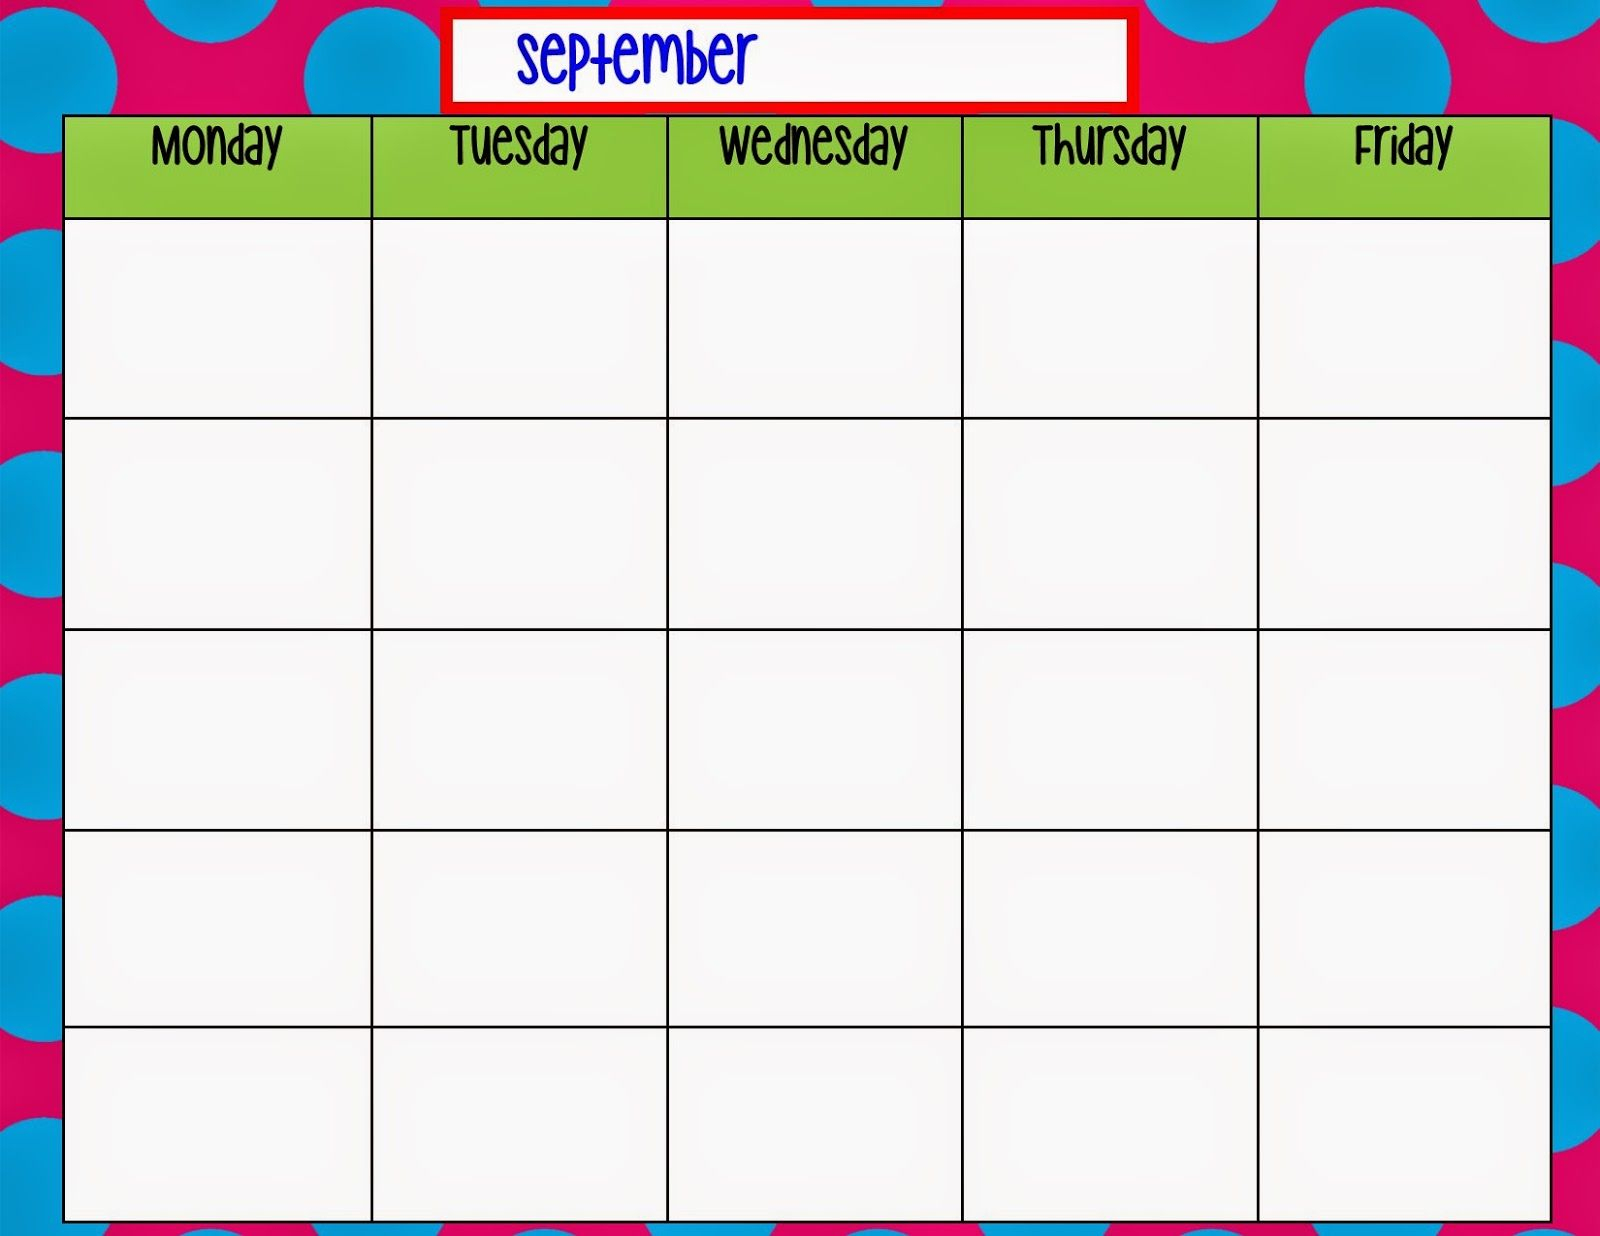 Monday Through Friday Calendar Template   Preschool   Weekly pertaining to Blank Weekly Monday Through Friday Calendar Template